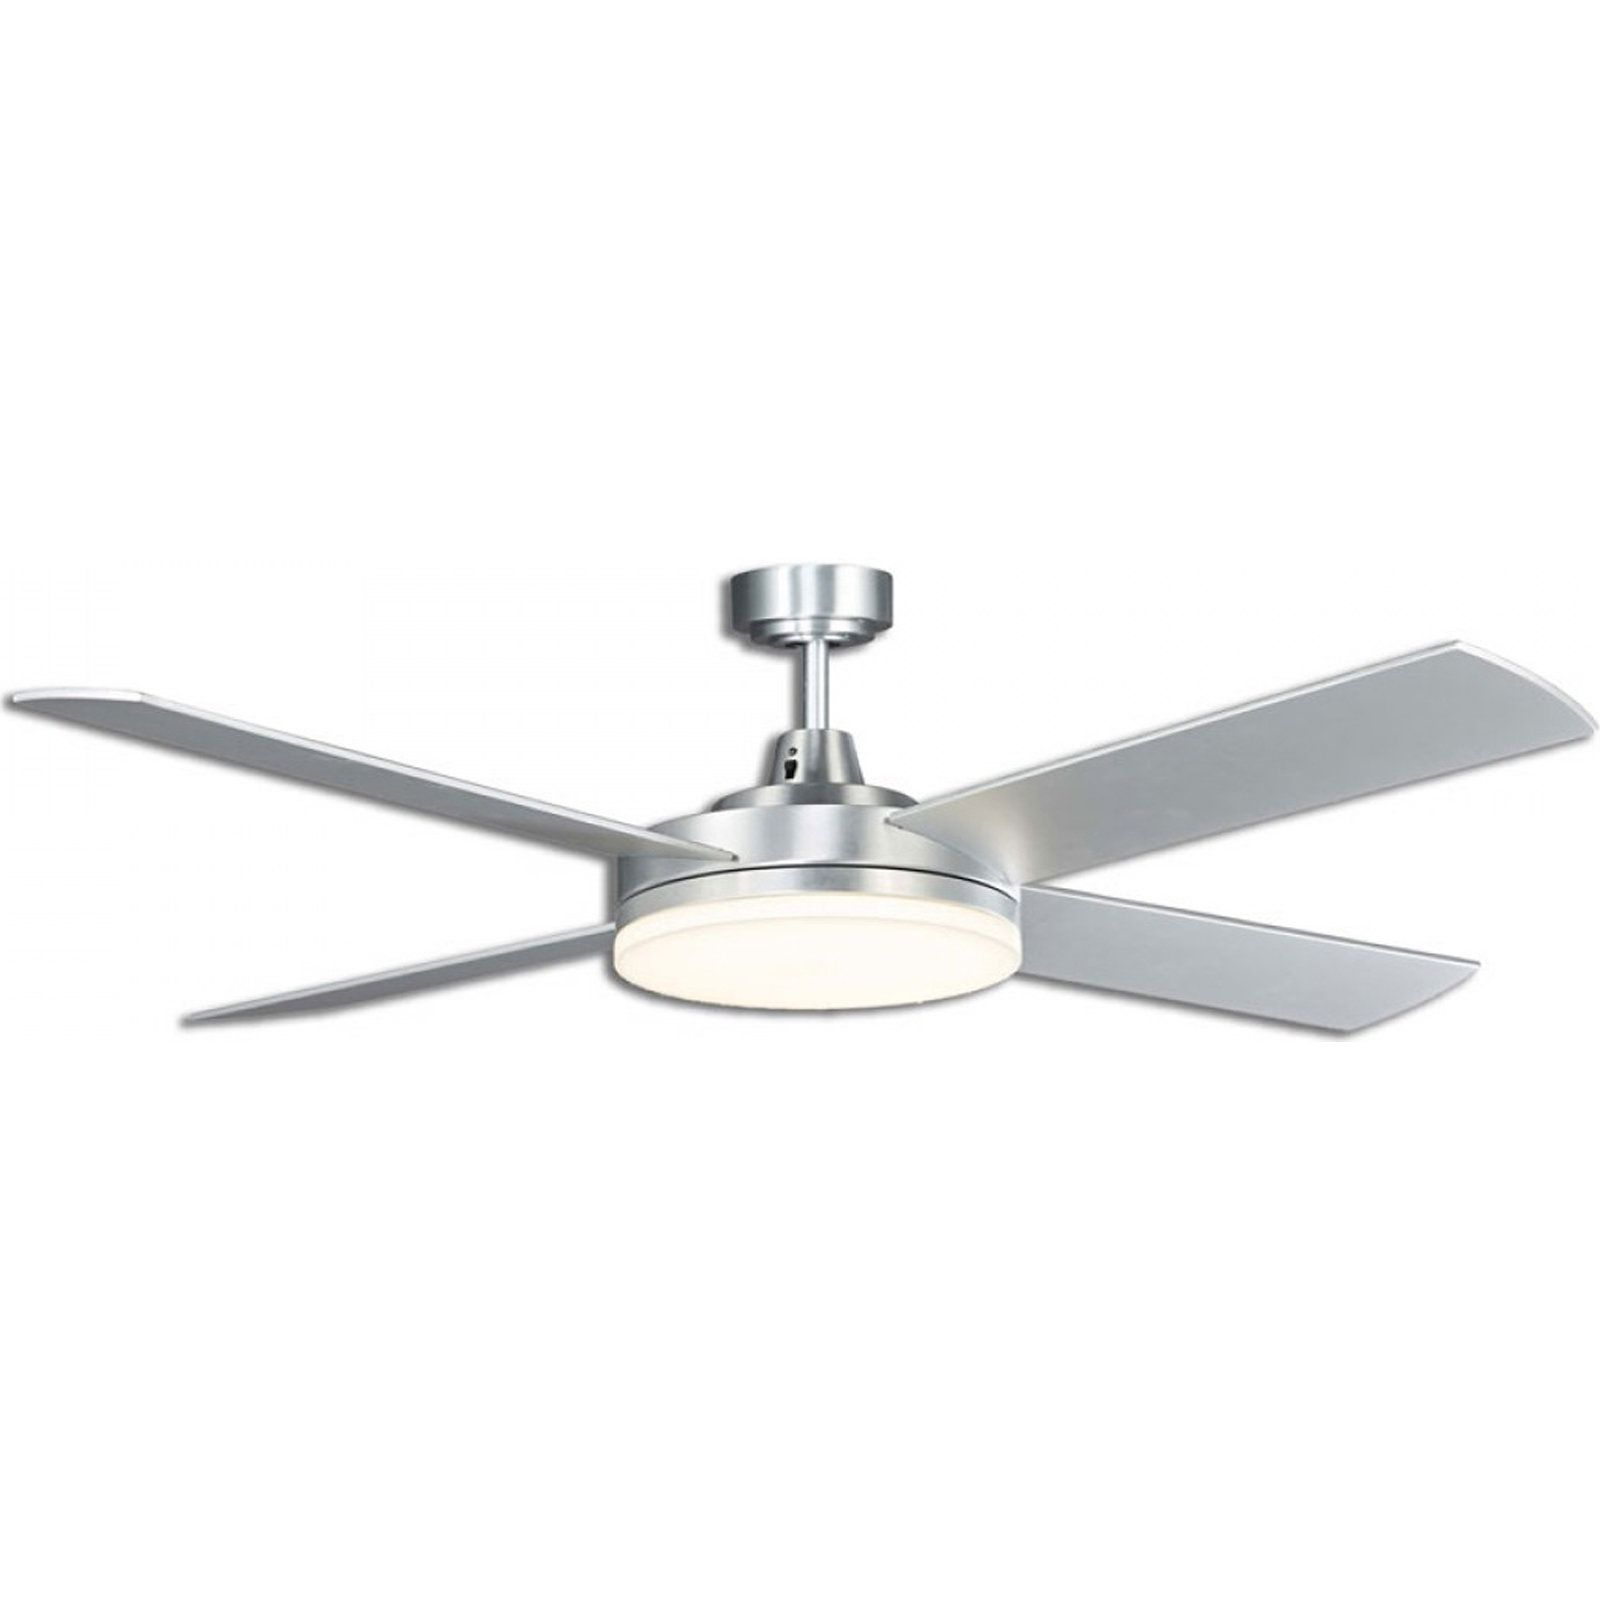 Low Profile Ceiling Fans With Led Lights httpscartclubus